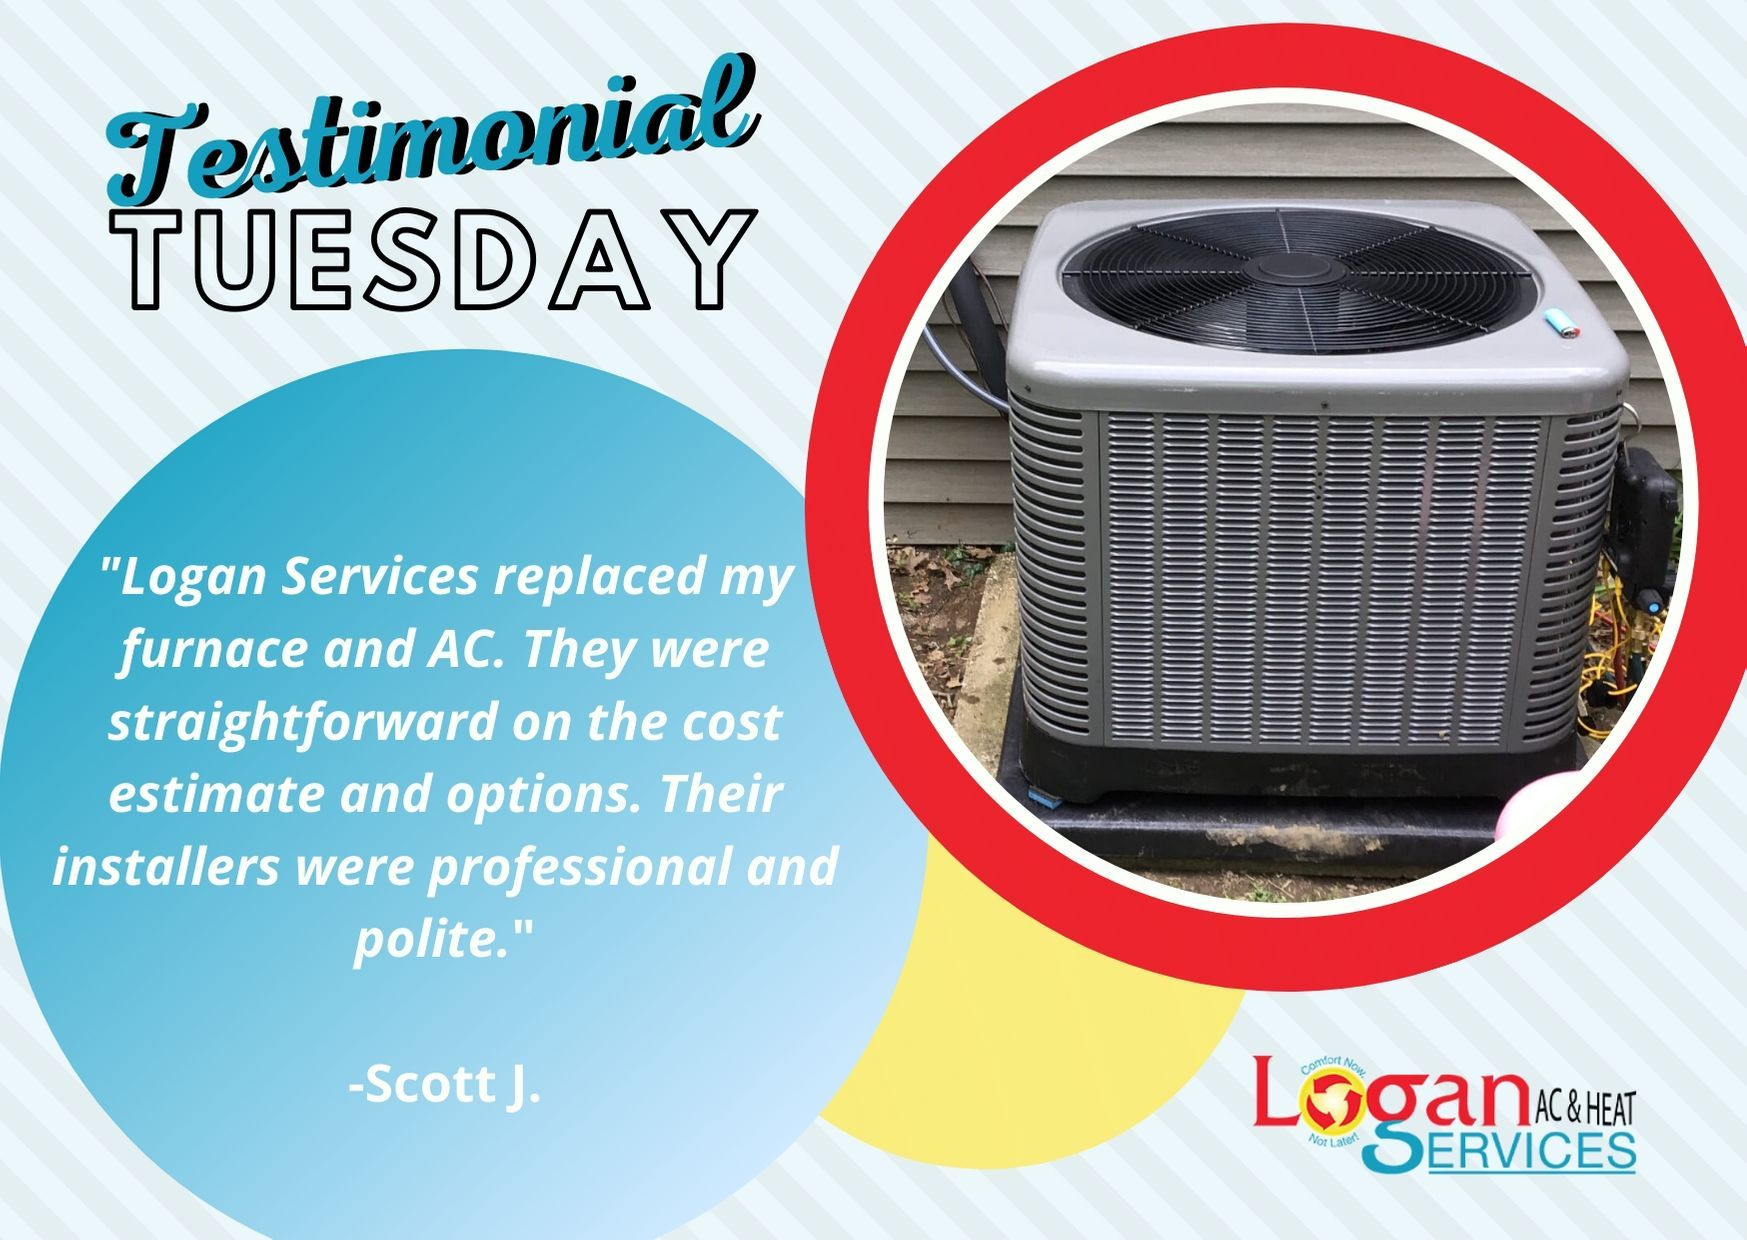 Testimonial Tuesday in 2020 Heating services